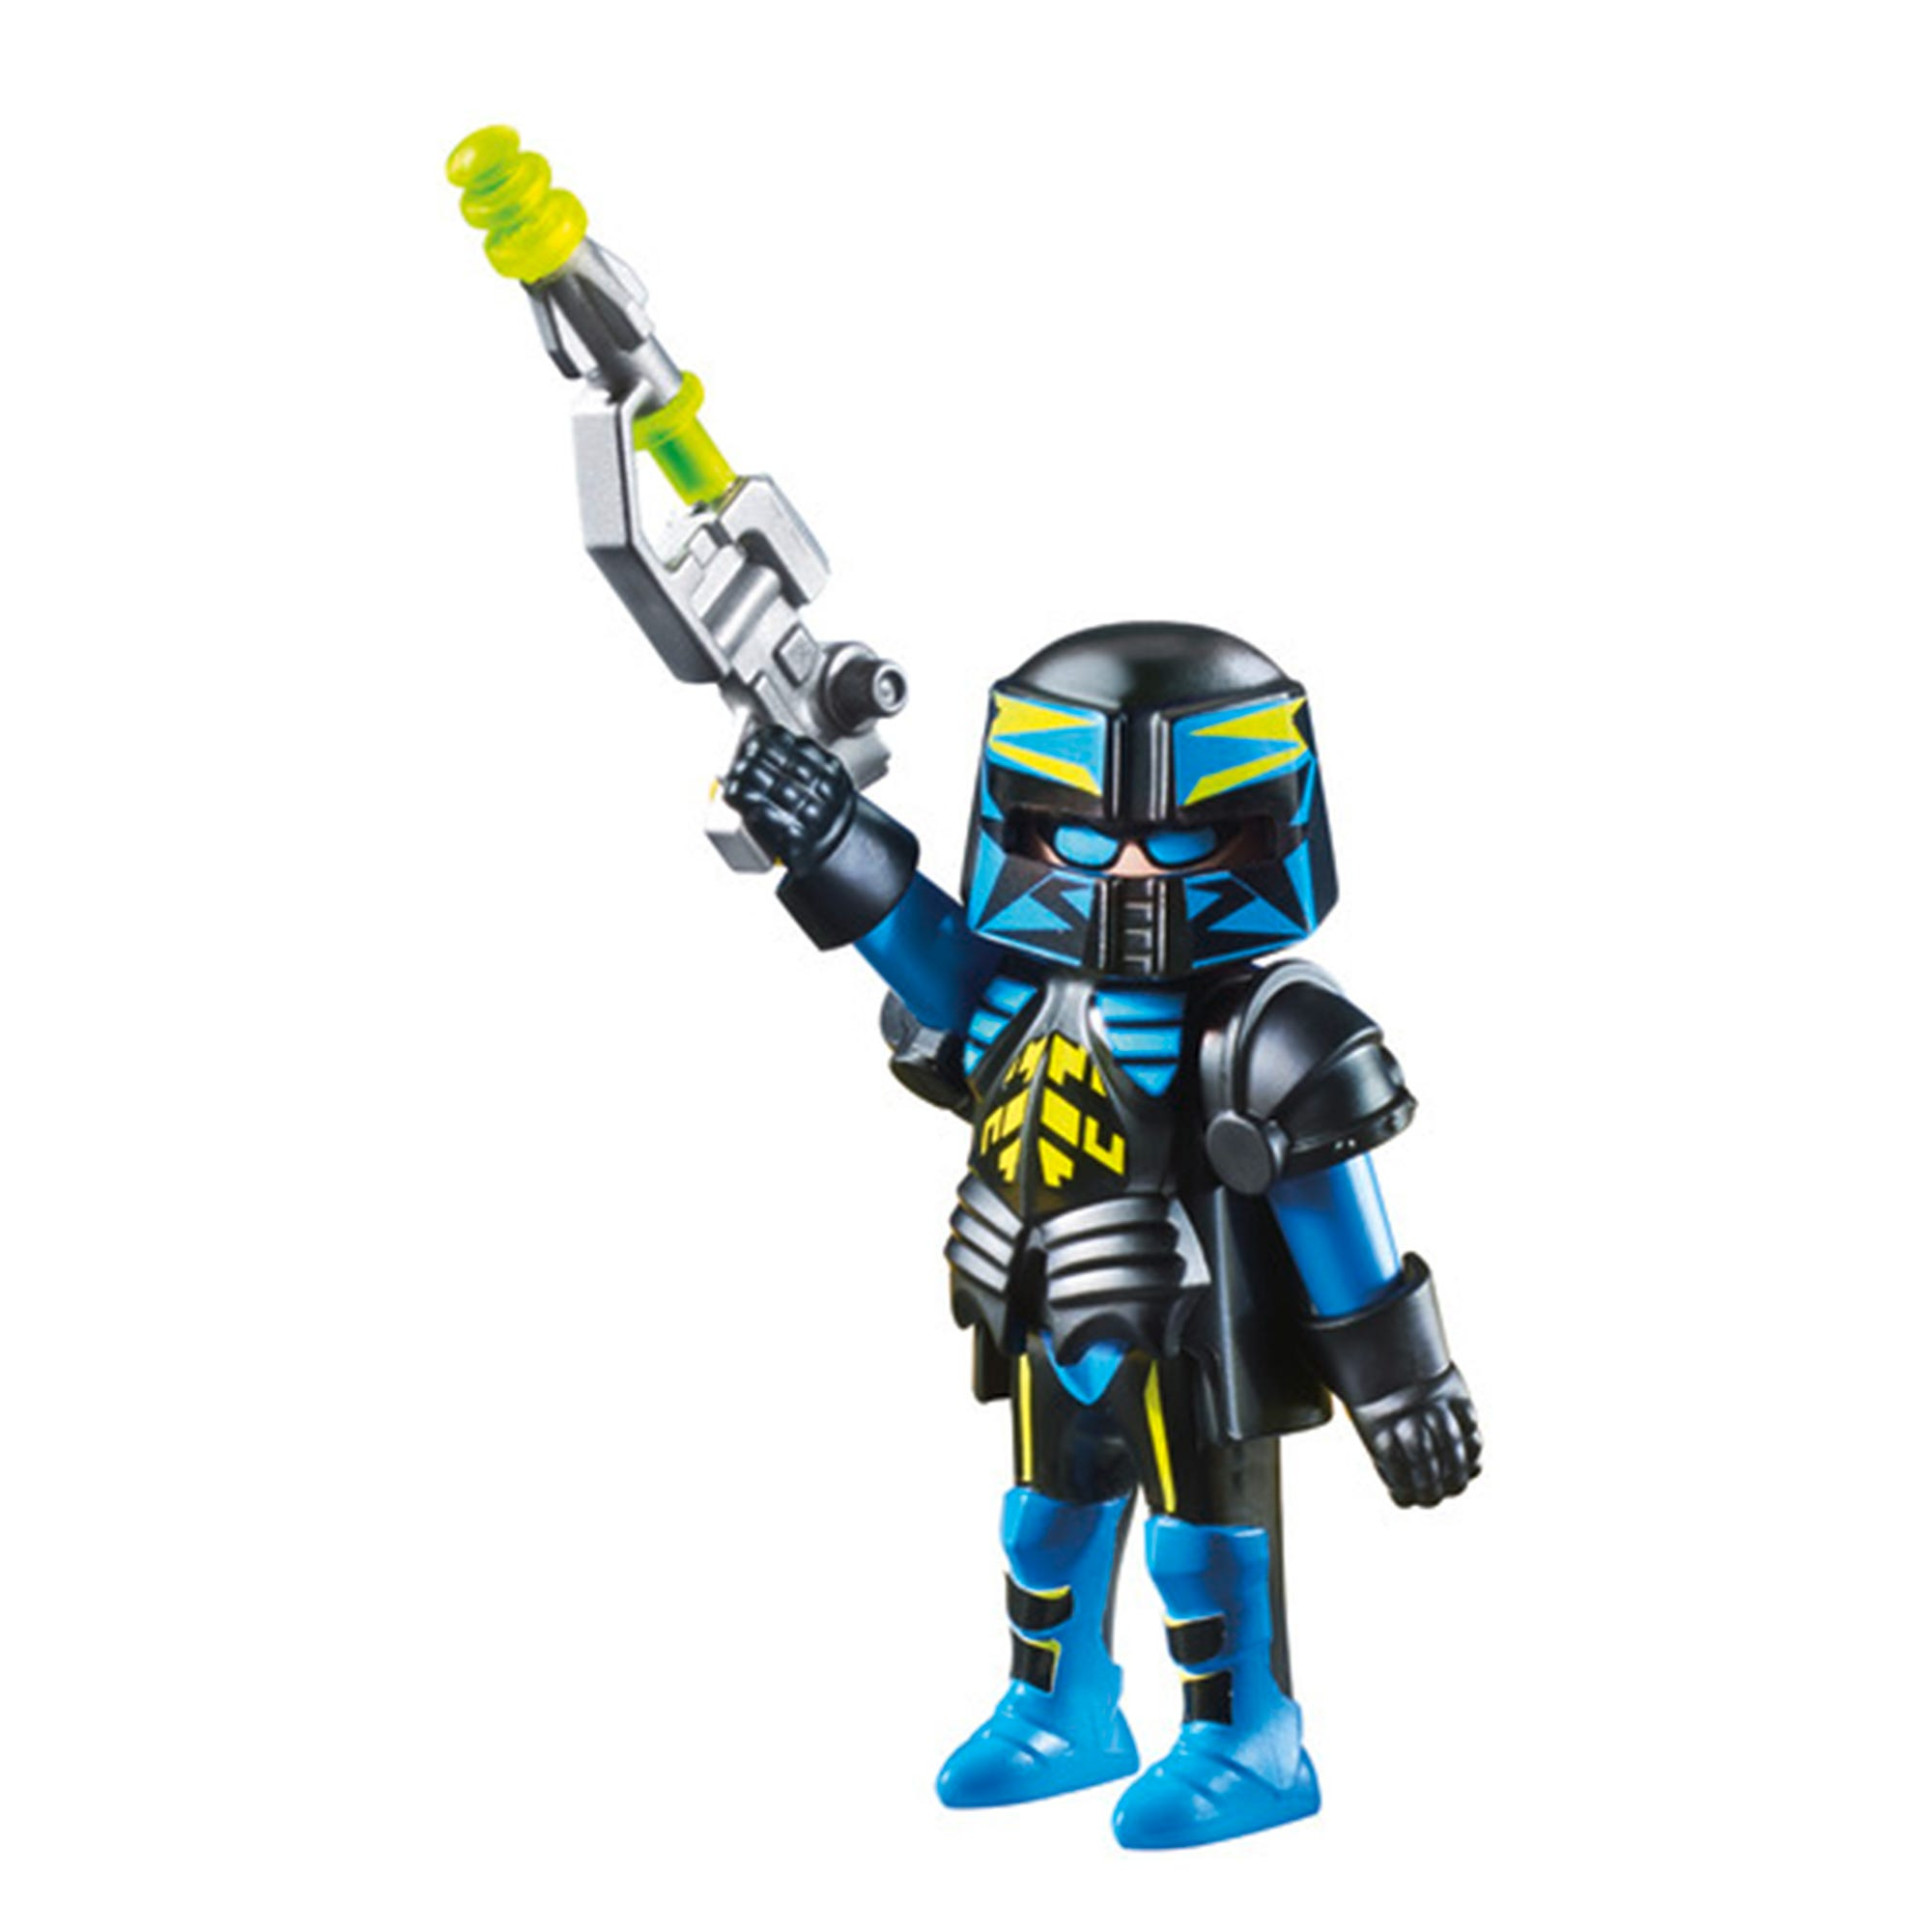 Playmobil Playmo Friends Space Agent 70027